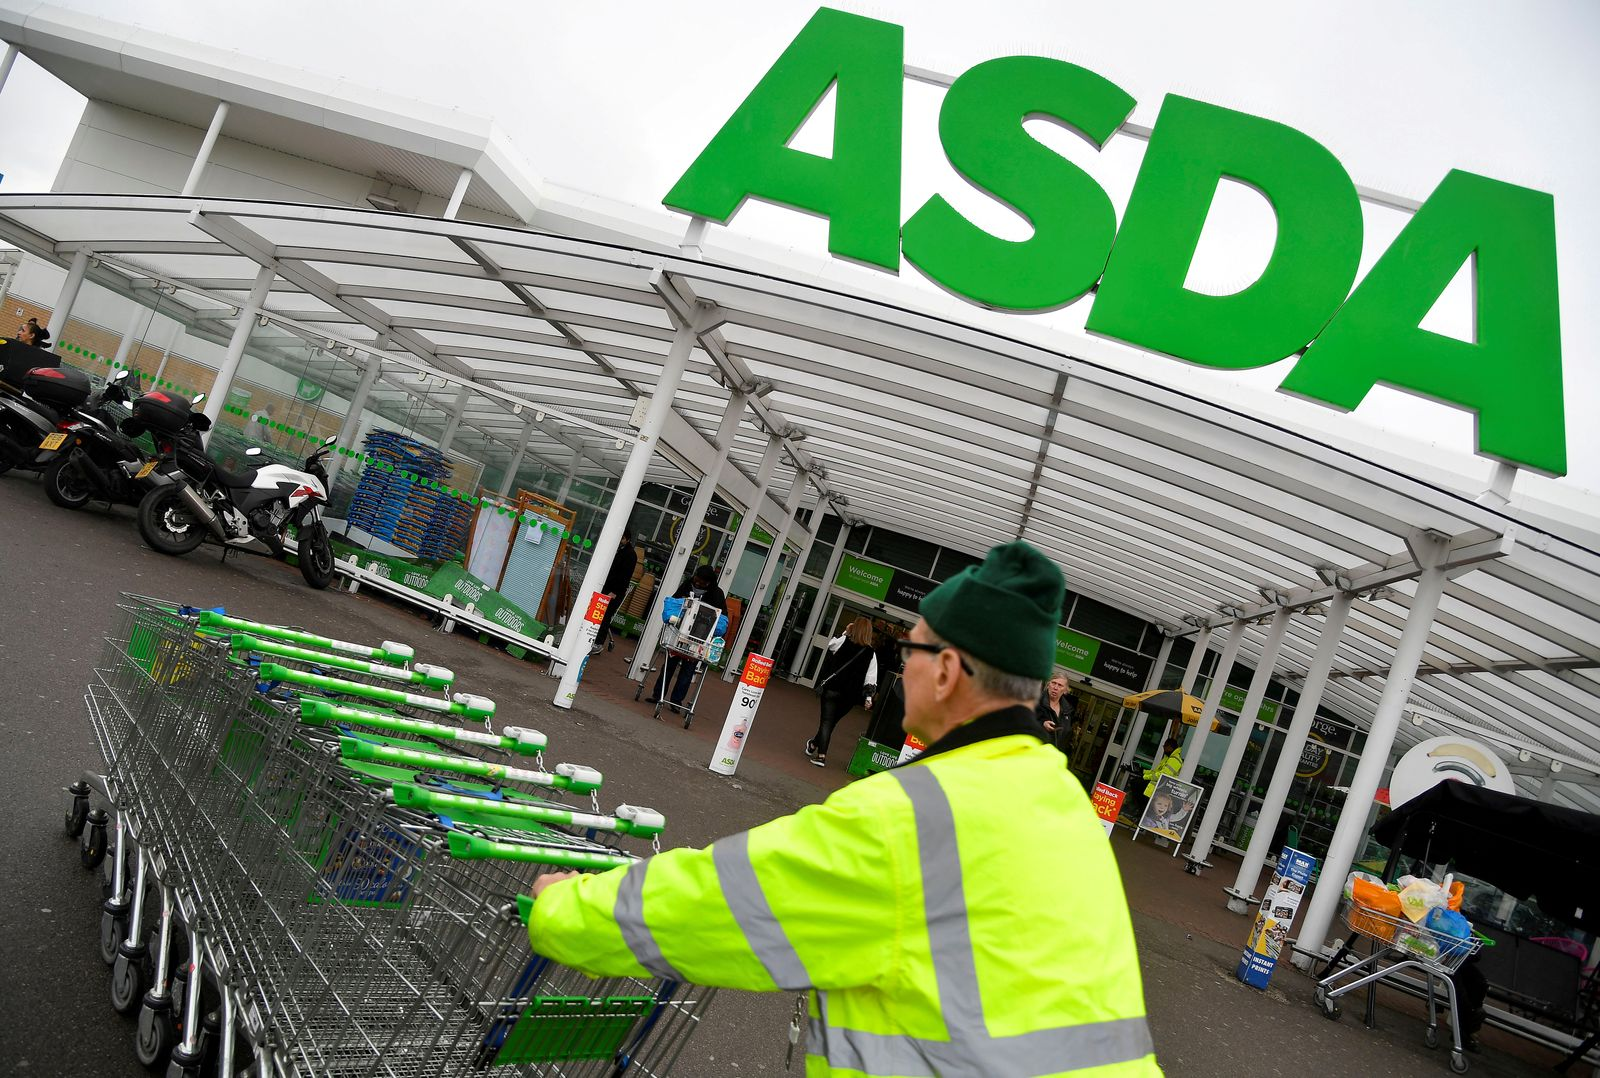 FILE PHOTO: A worker pushes shopping trolleys at an Asda store in London